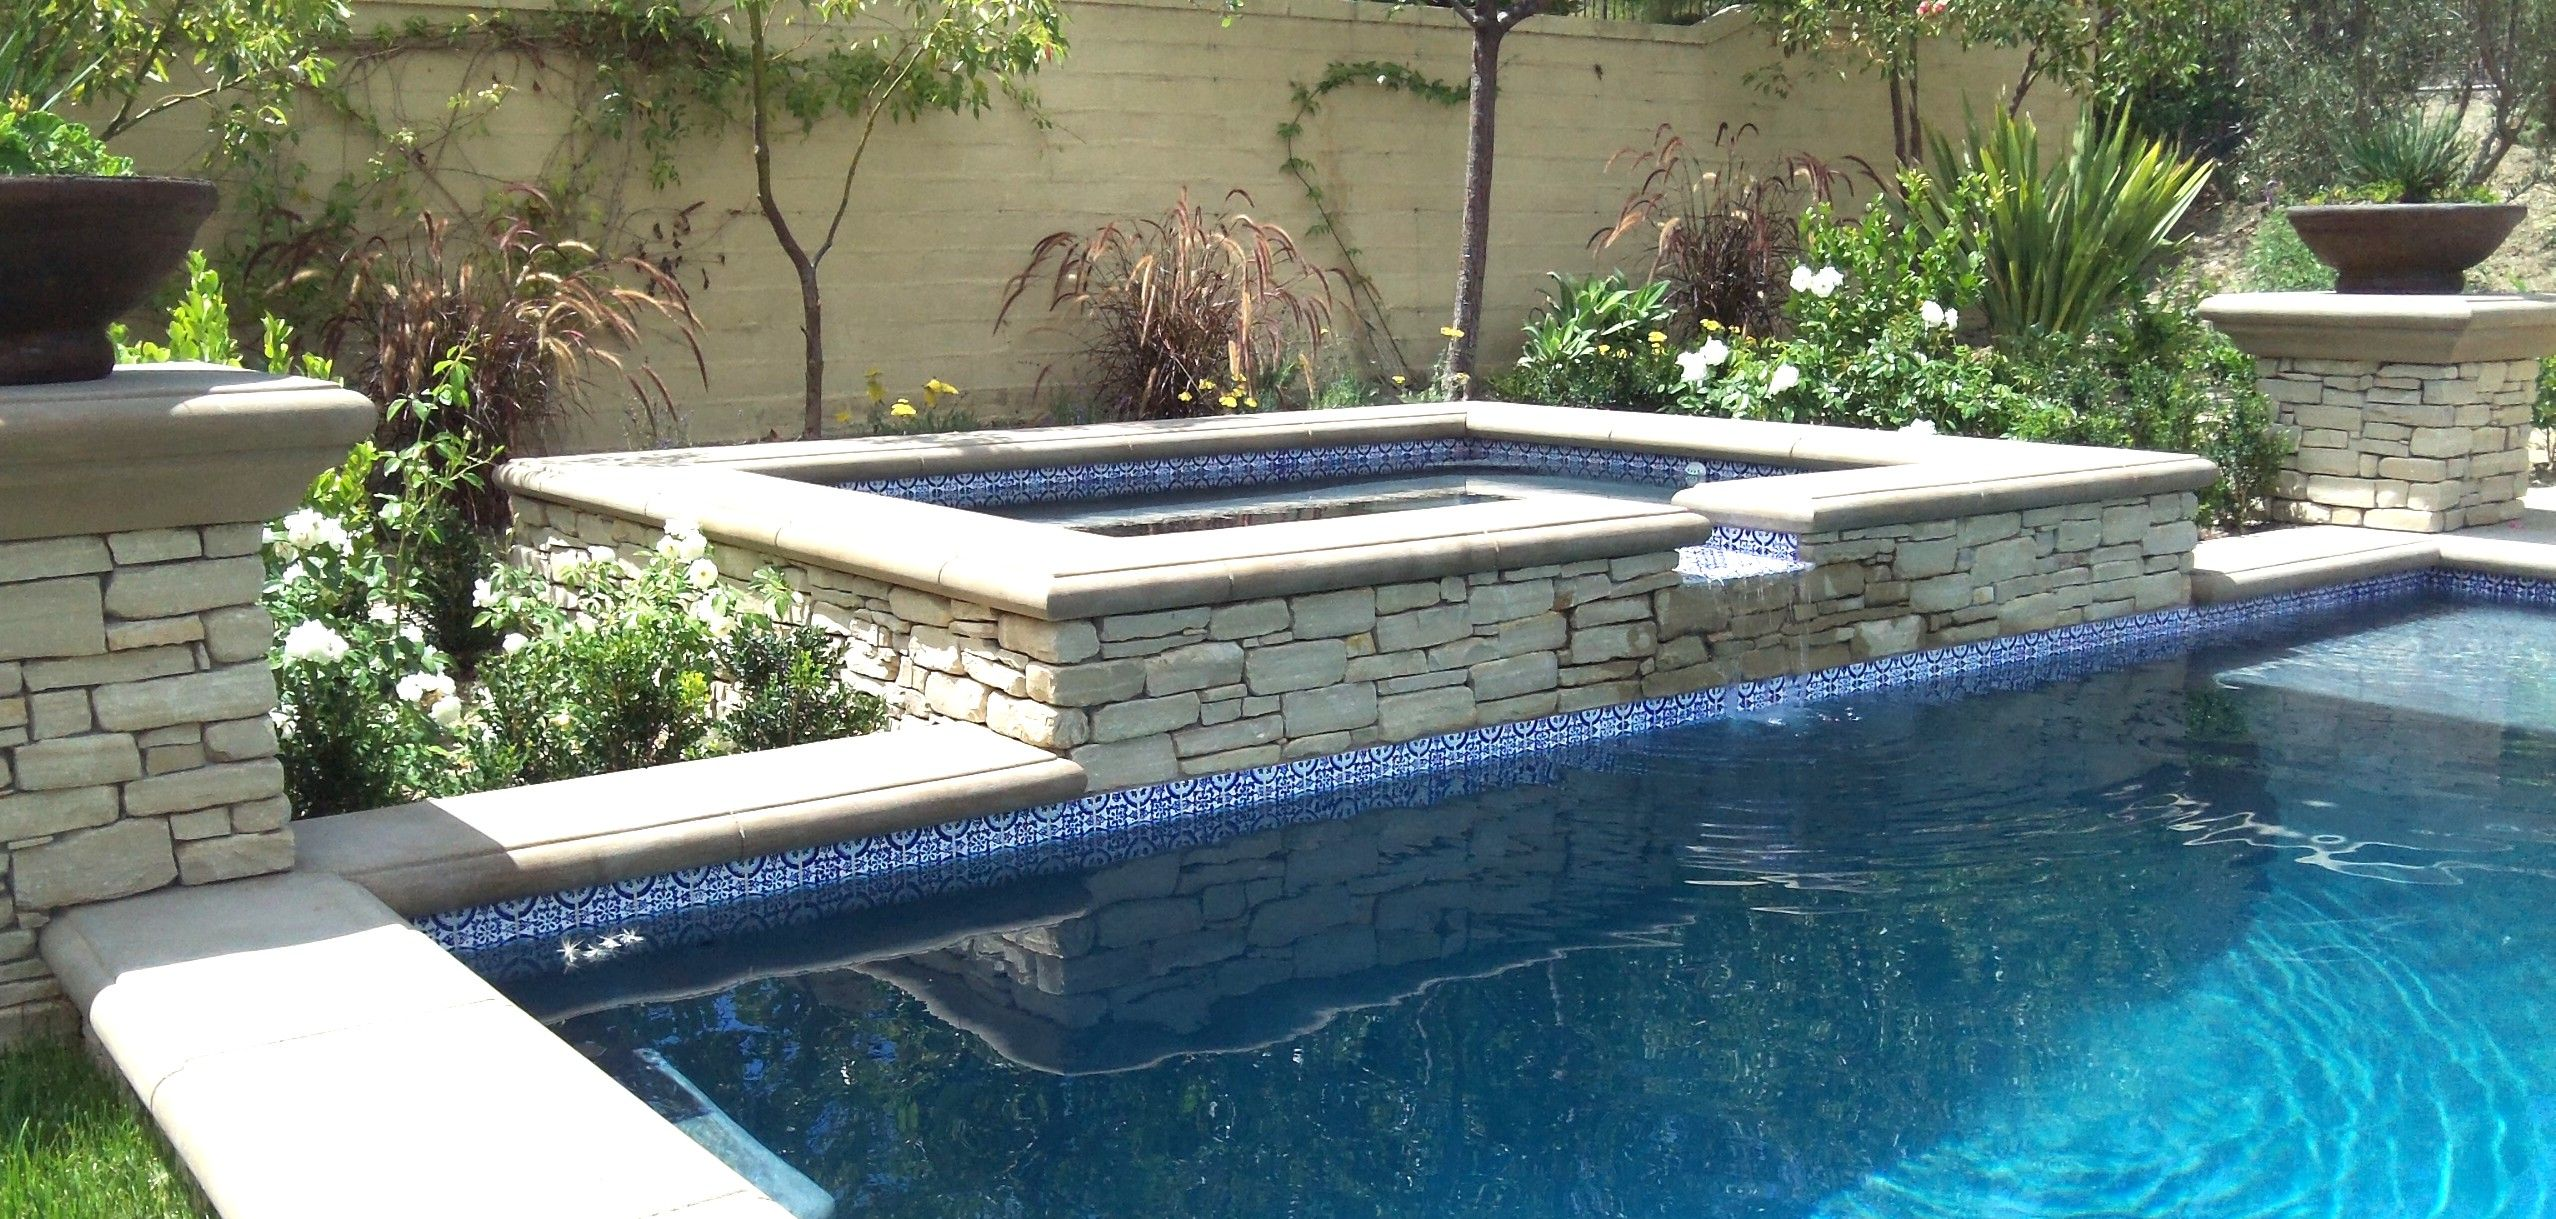 Pool tile designs pool water fountain design ideas small for Backyard swimming pool designs